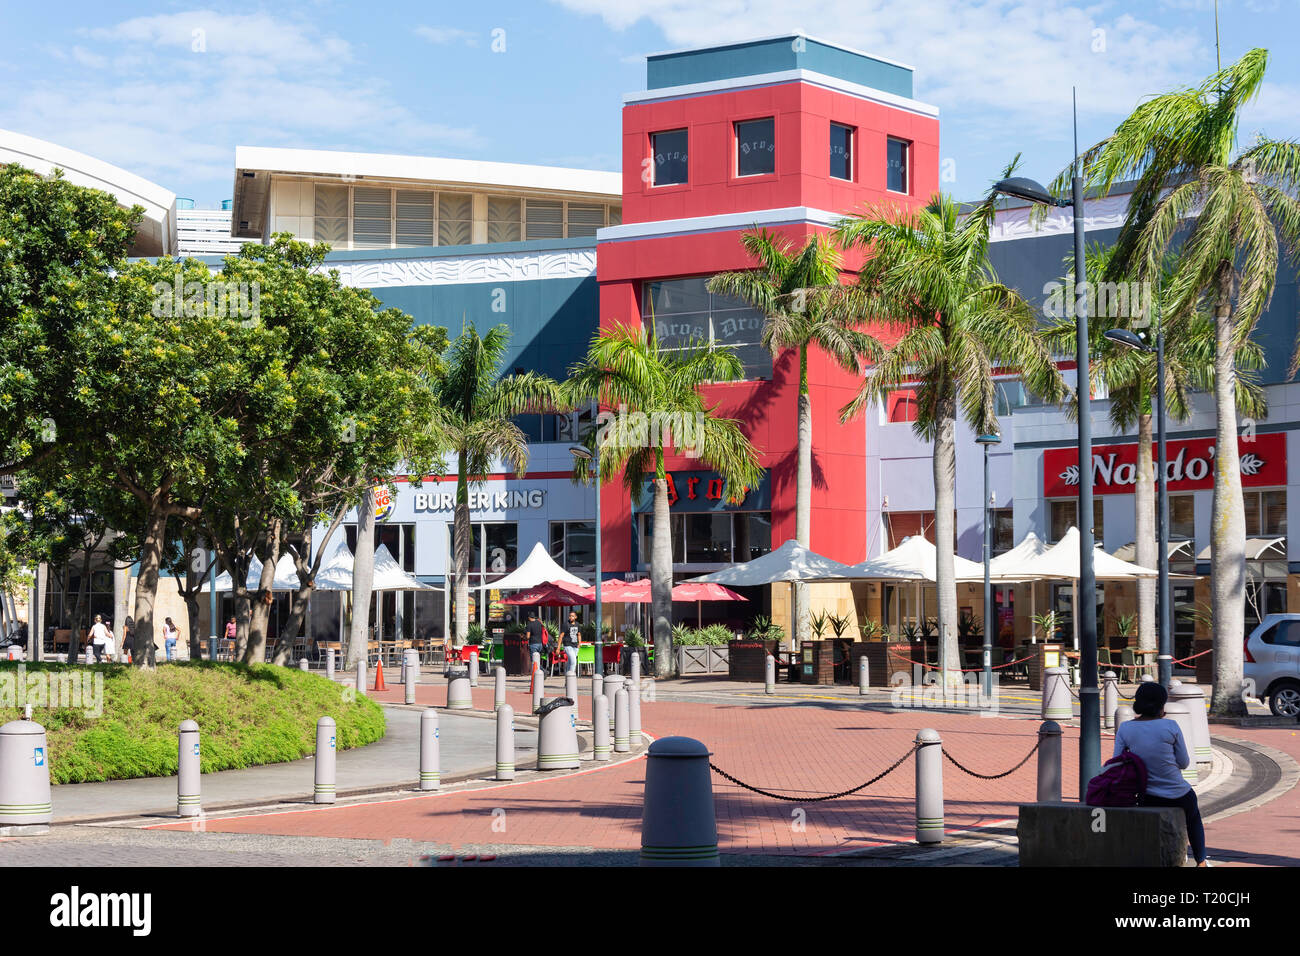 Fast food restaurants at entrance to Gateway Theatre of Shopping, Palm Boulevard, Umhlanga Ridge, Umhlanga, KwaZulu-Natal, South Africa Stock Photo